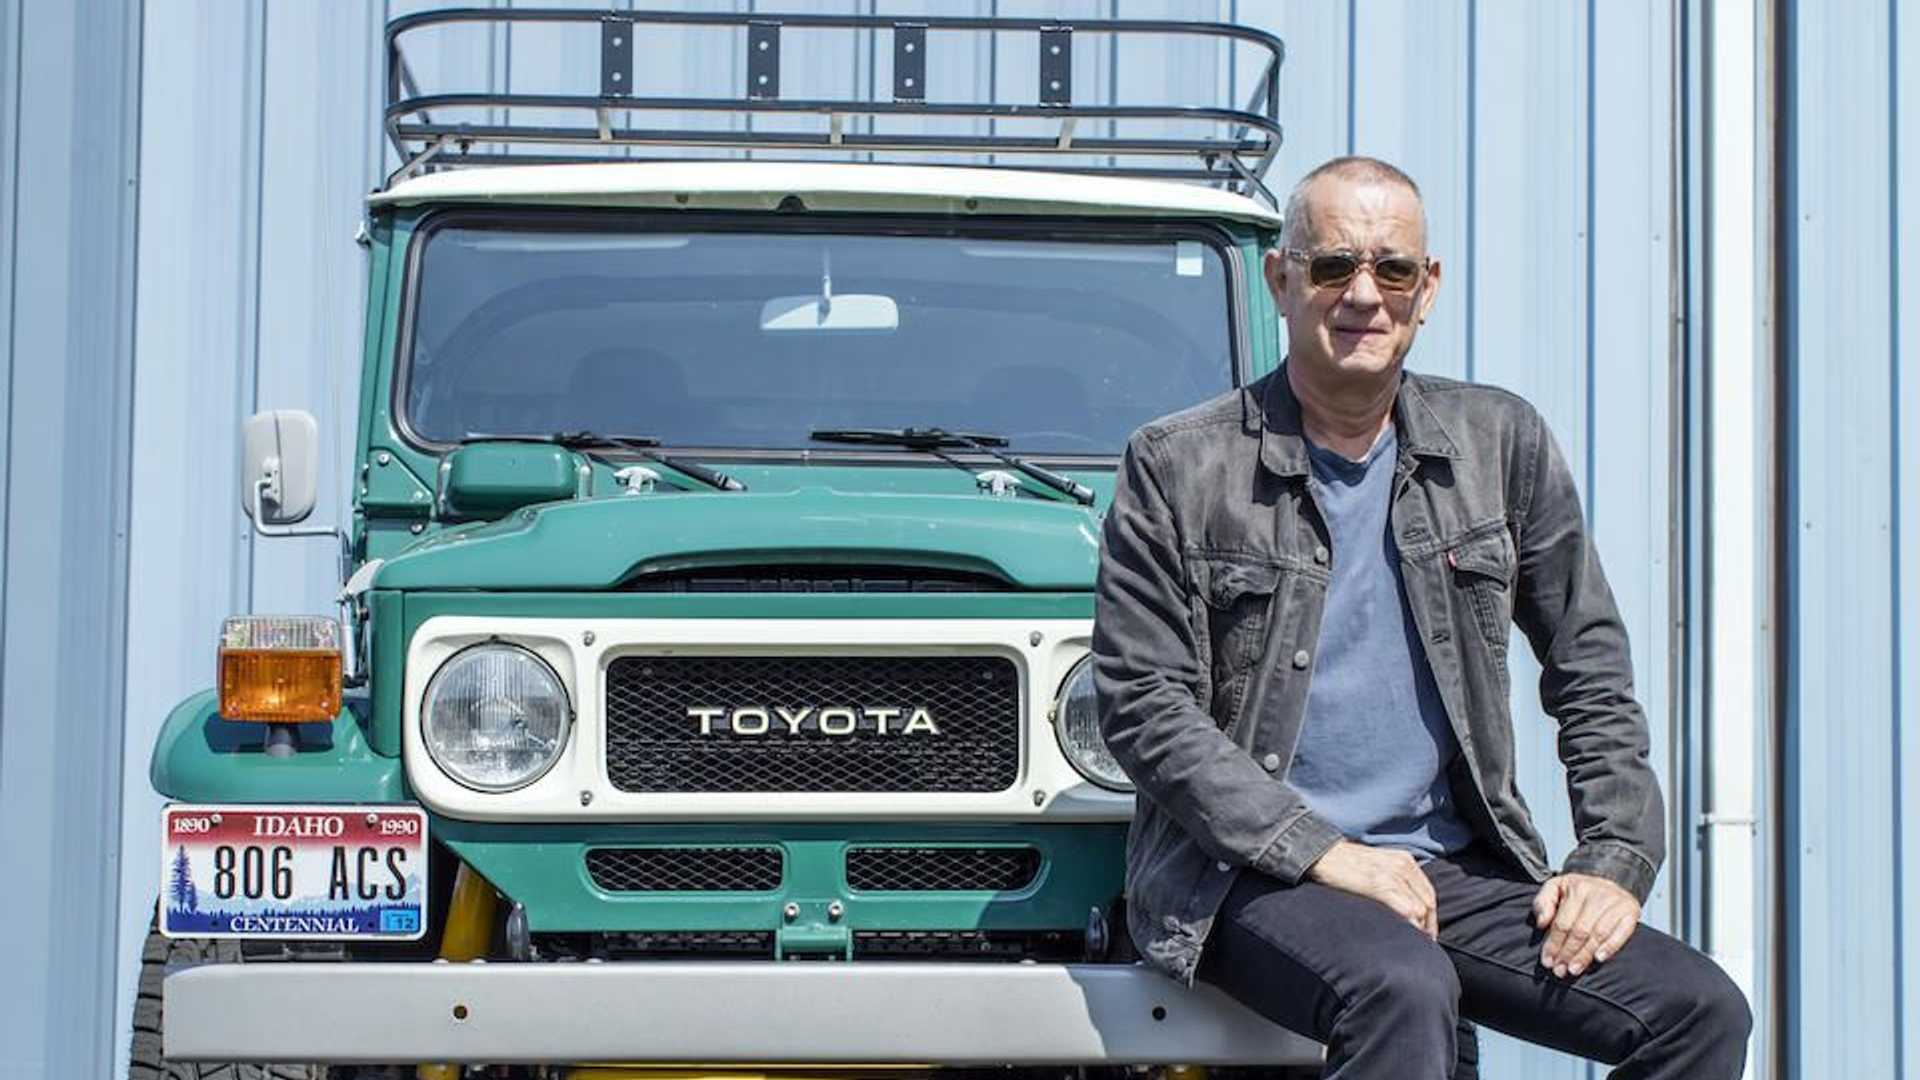 Tom Hanks's Incredible Toyota Land Cruiser Is Up For Auction